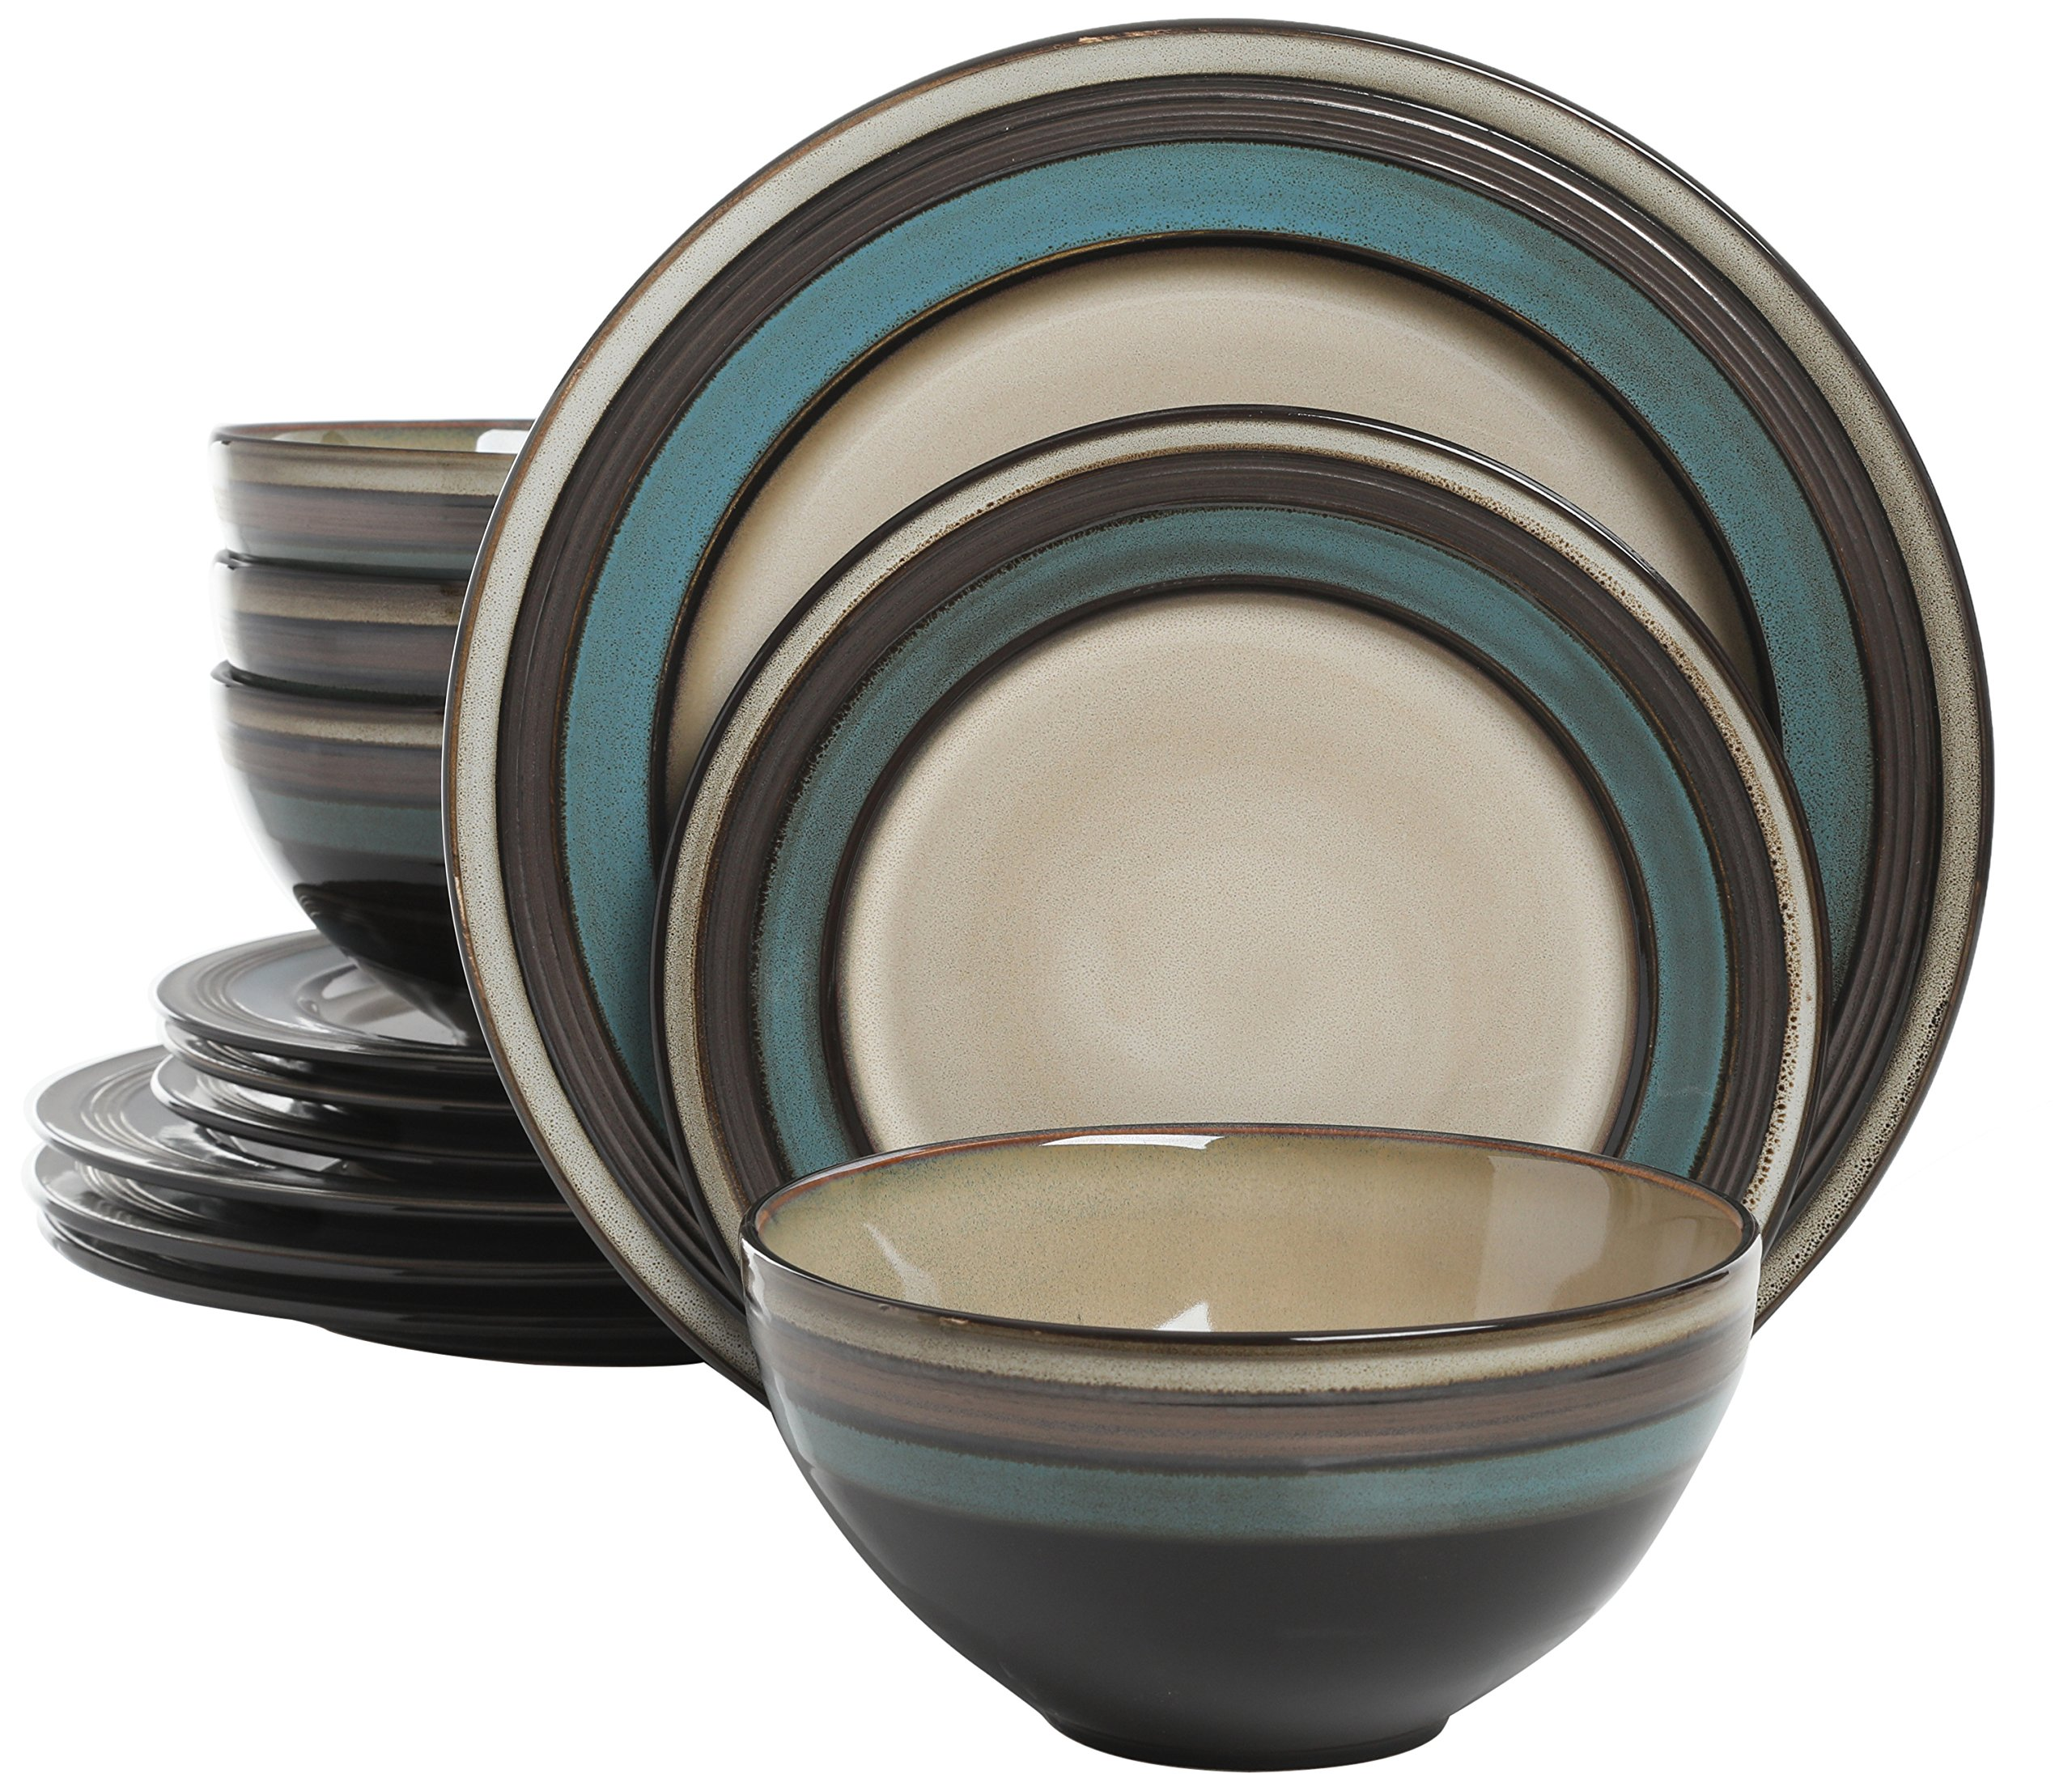 Gibson Elite Everston 12 Piece Dinnerware Set, Teal and Cream, Reactive Glaze Stoneware